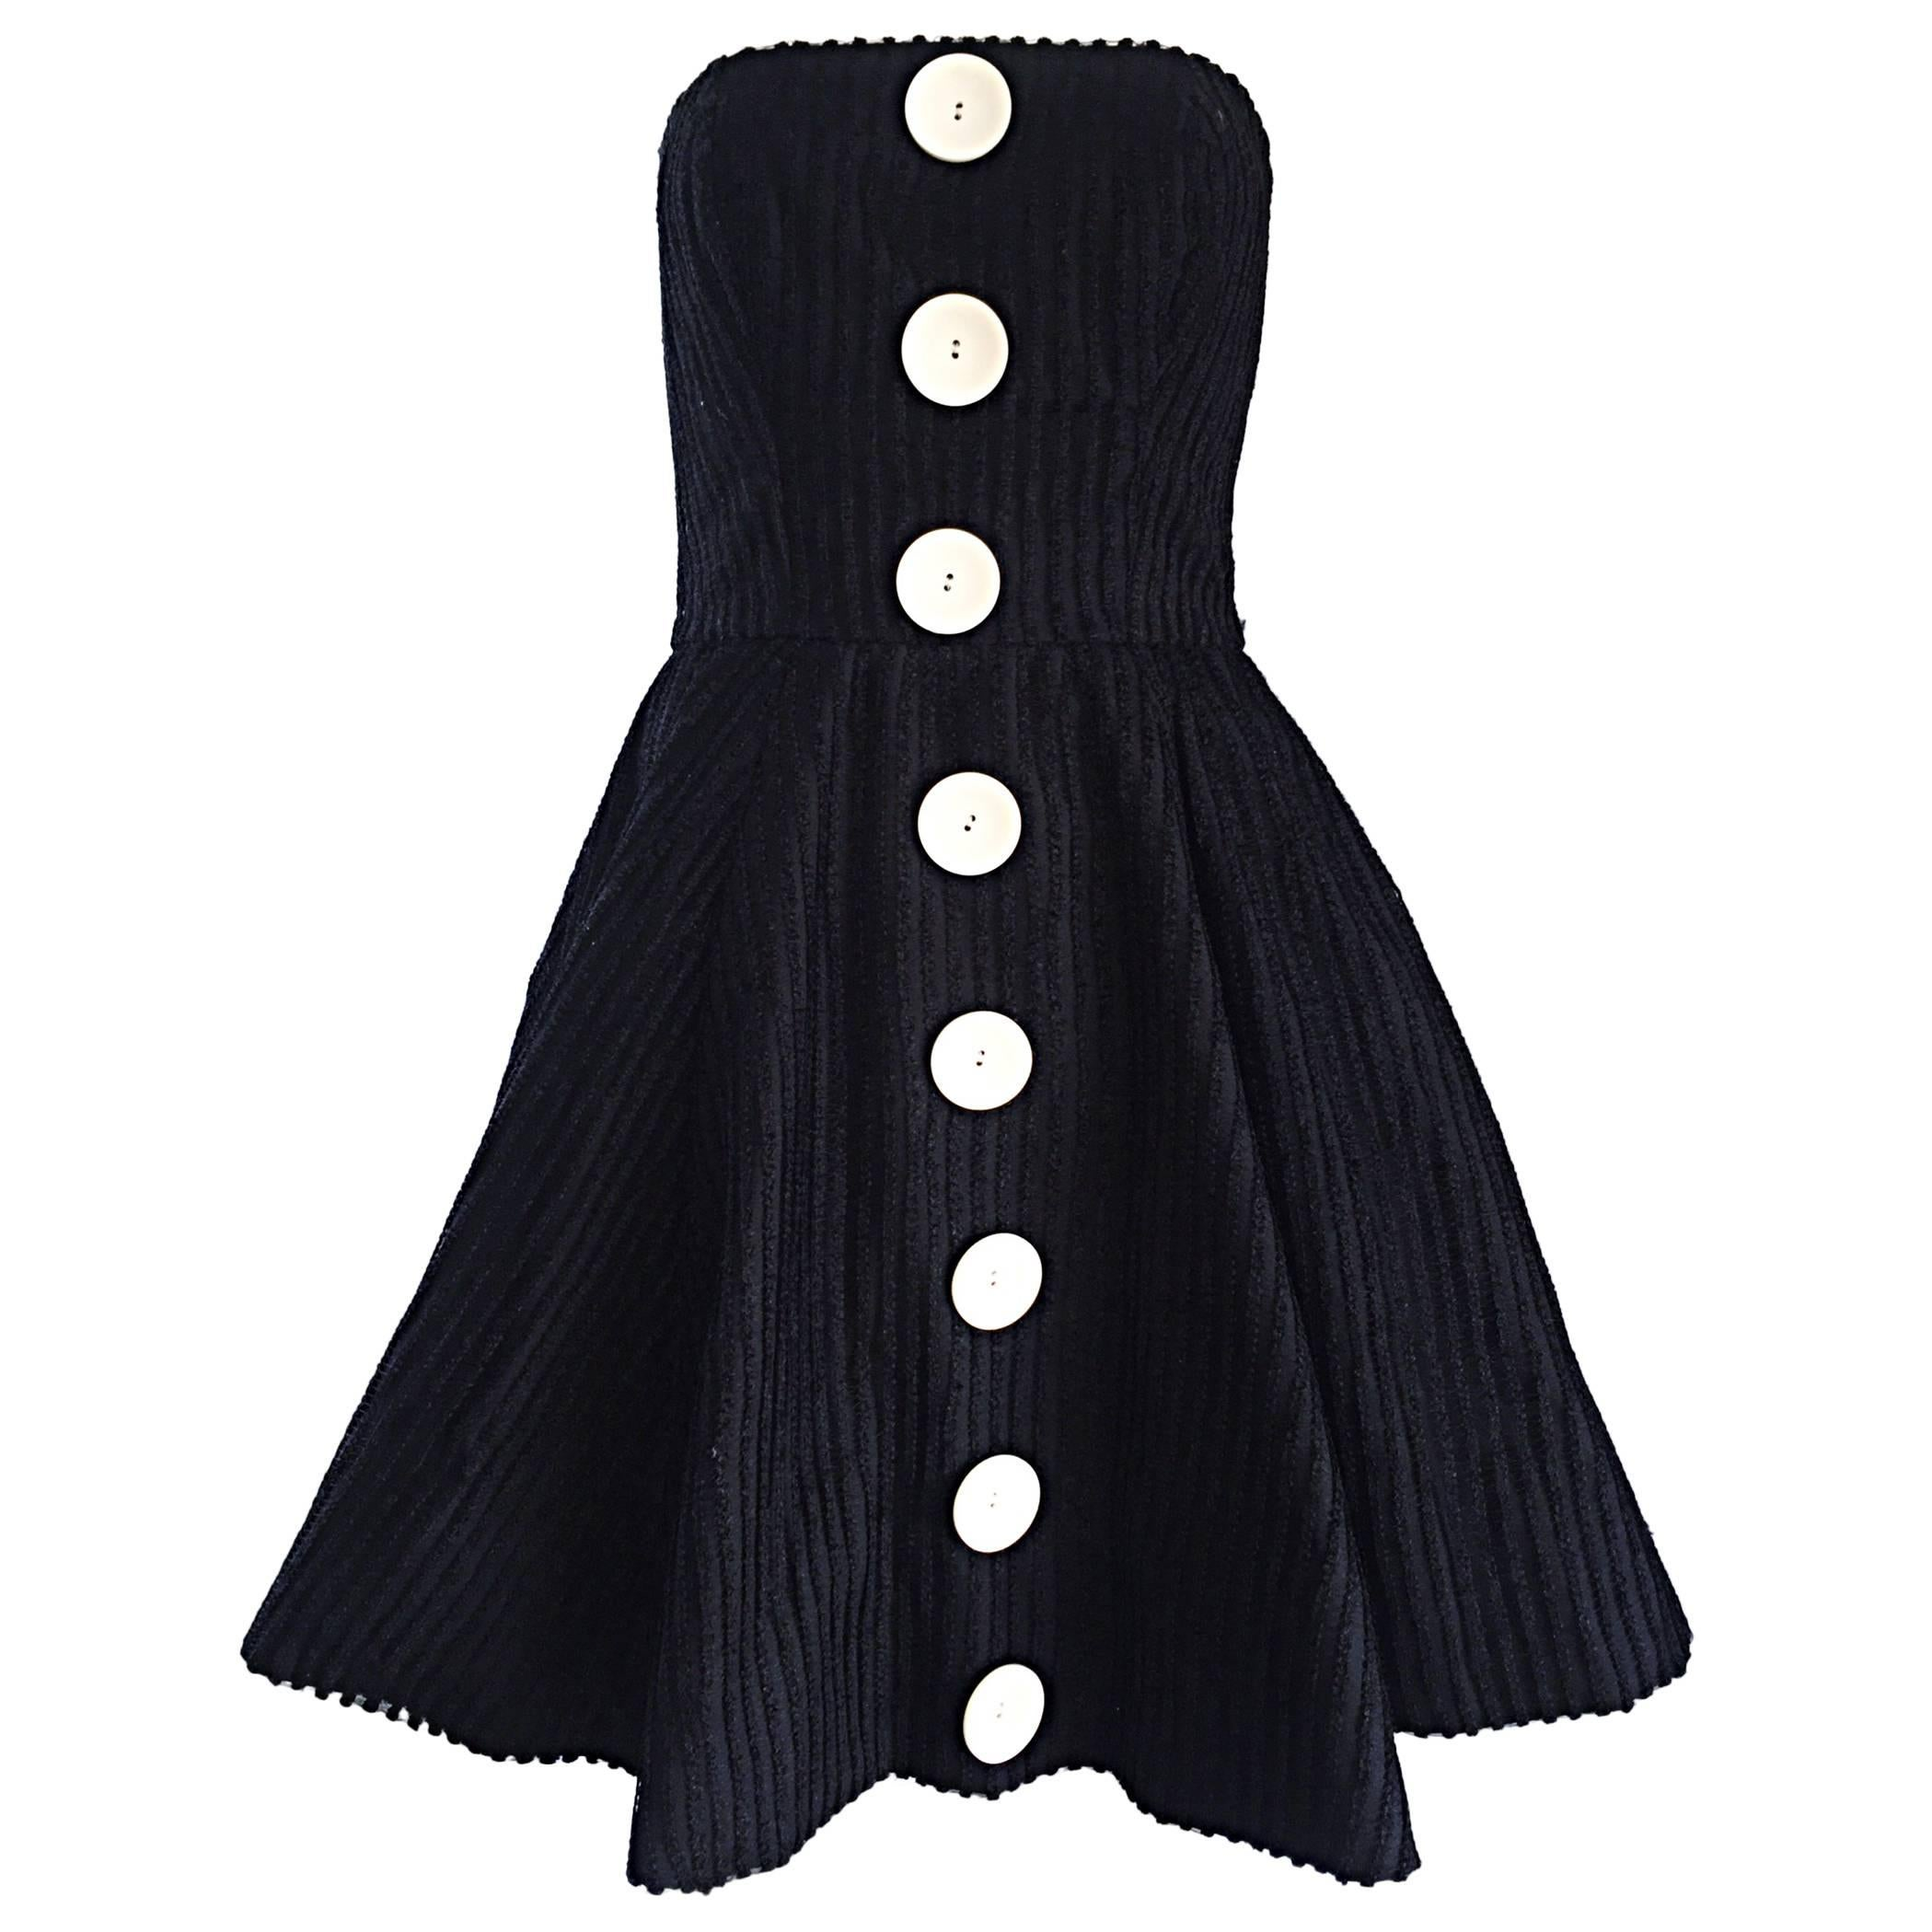 Vintage Christian Lacroix Black and White Fit n' Flare Strapless Button Dress